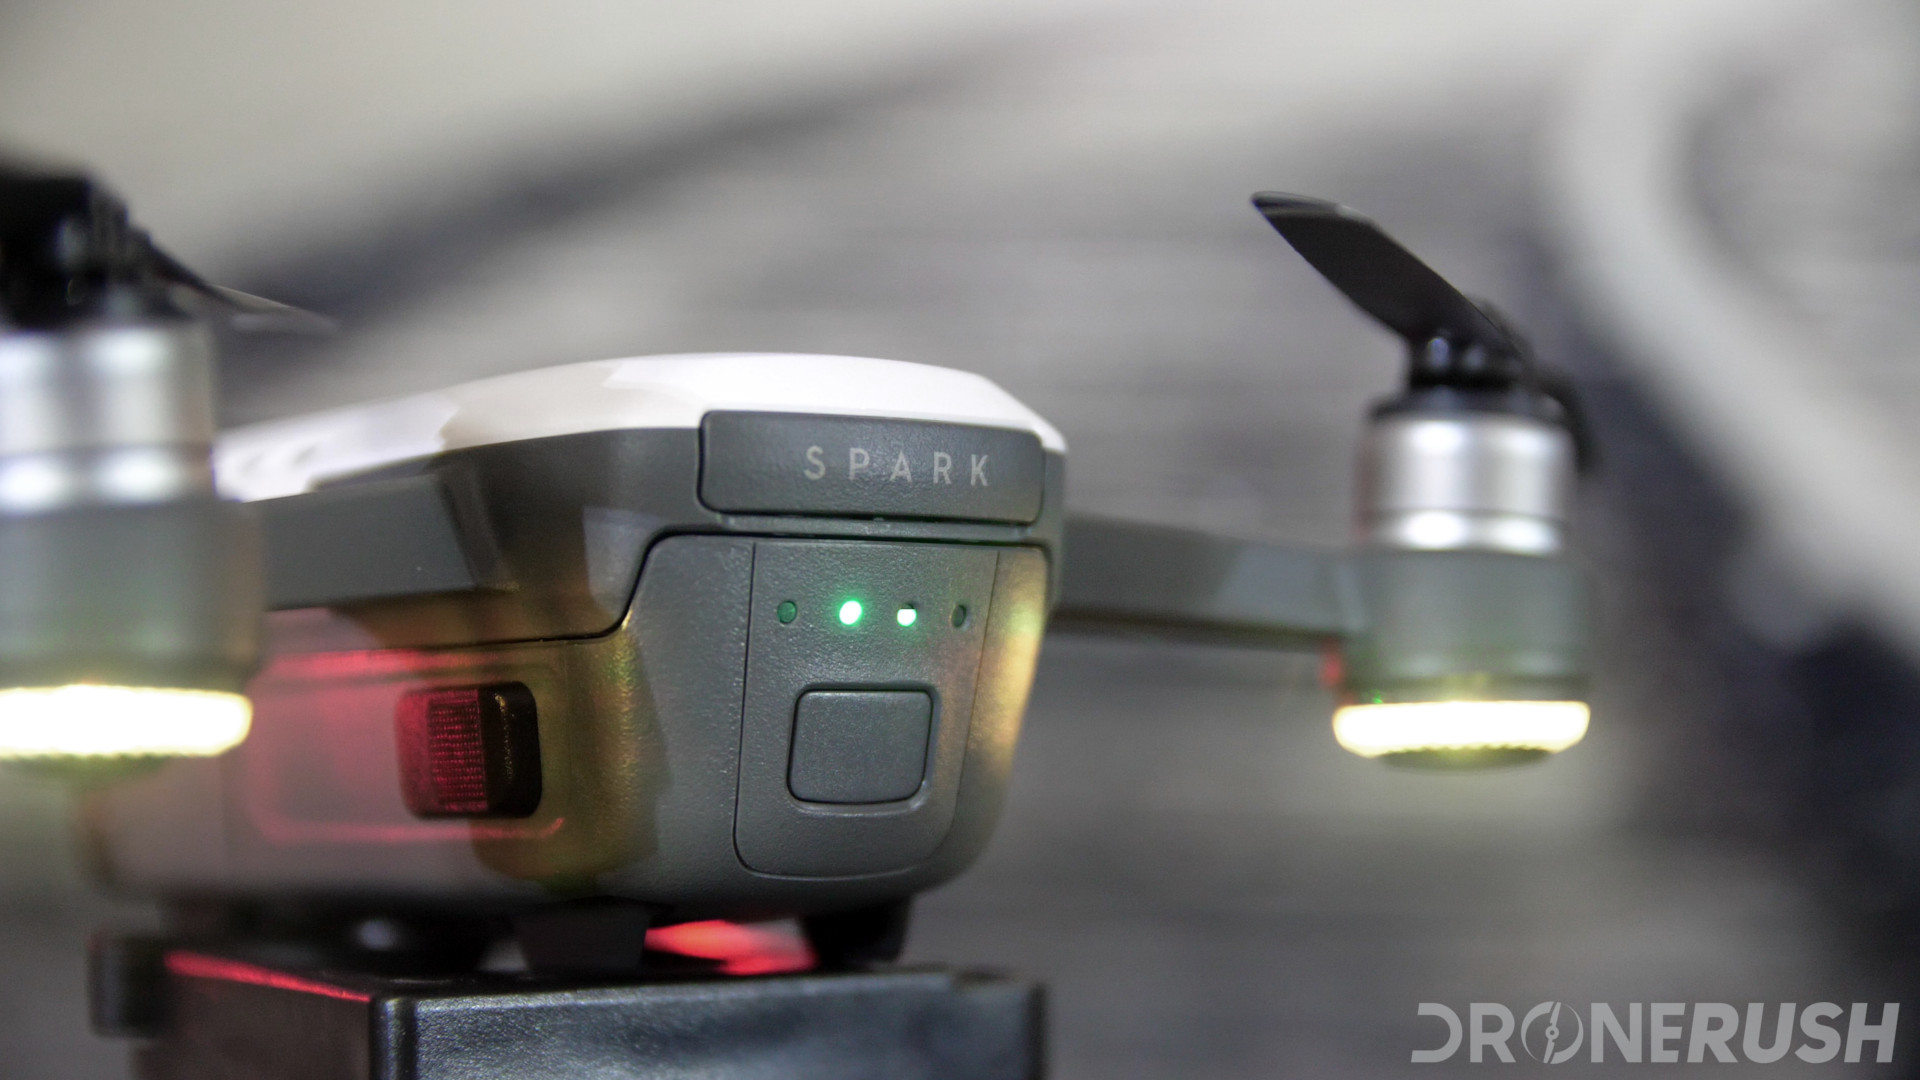 Dji Spark Unboxing And Setup Before You Fly Drone Rush